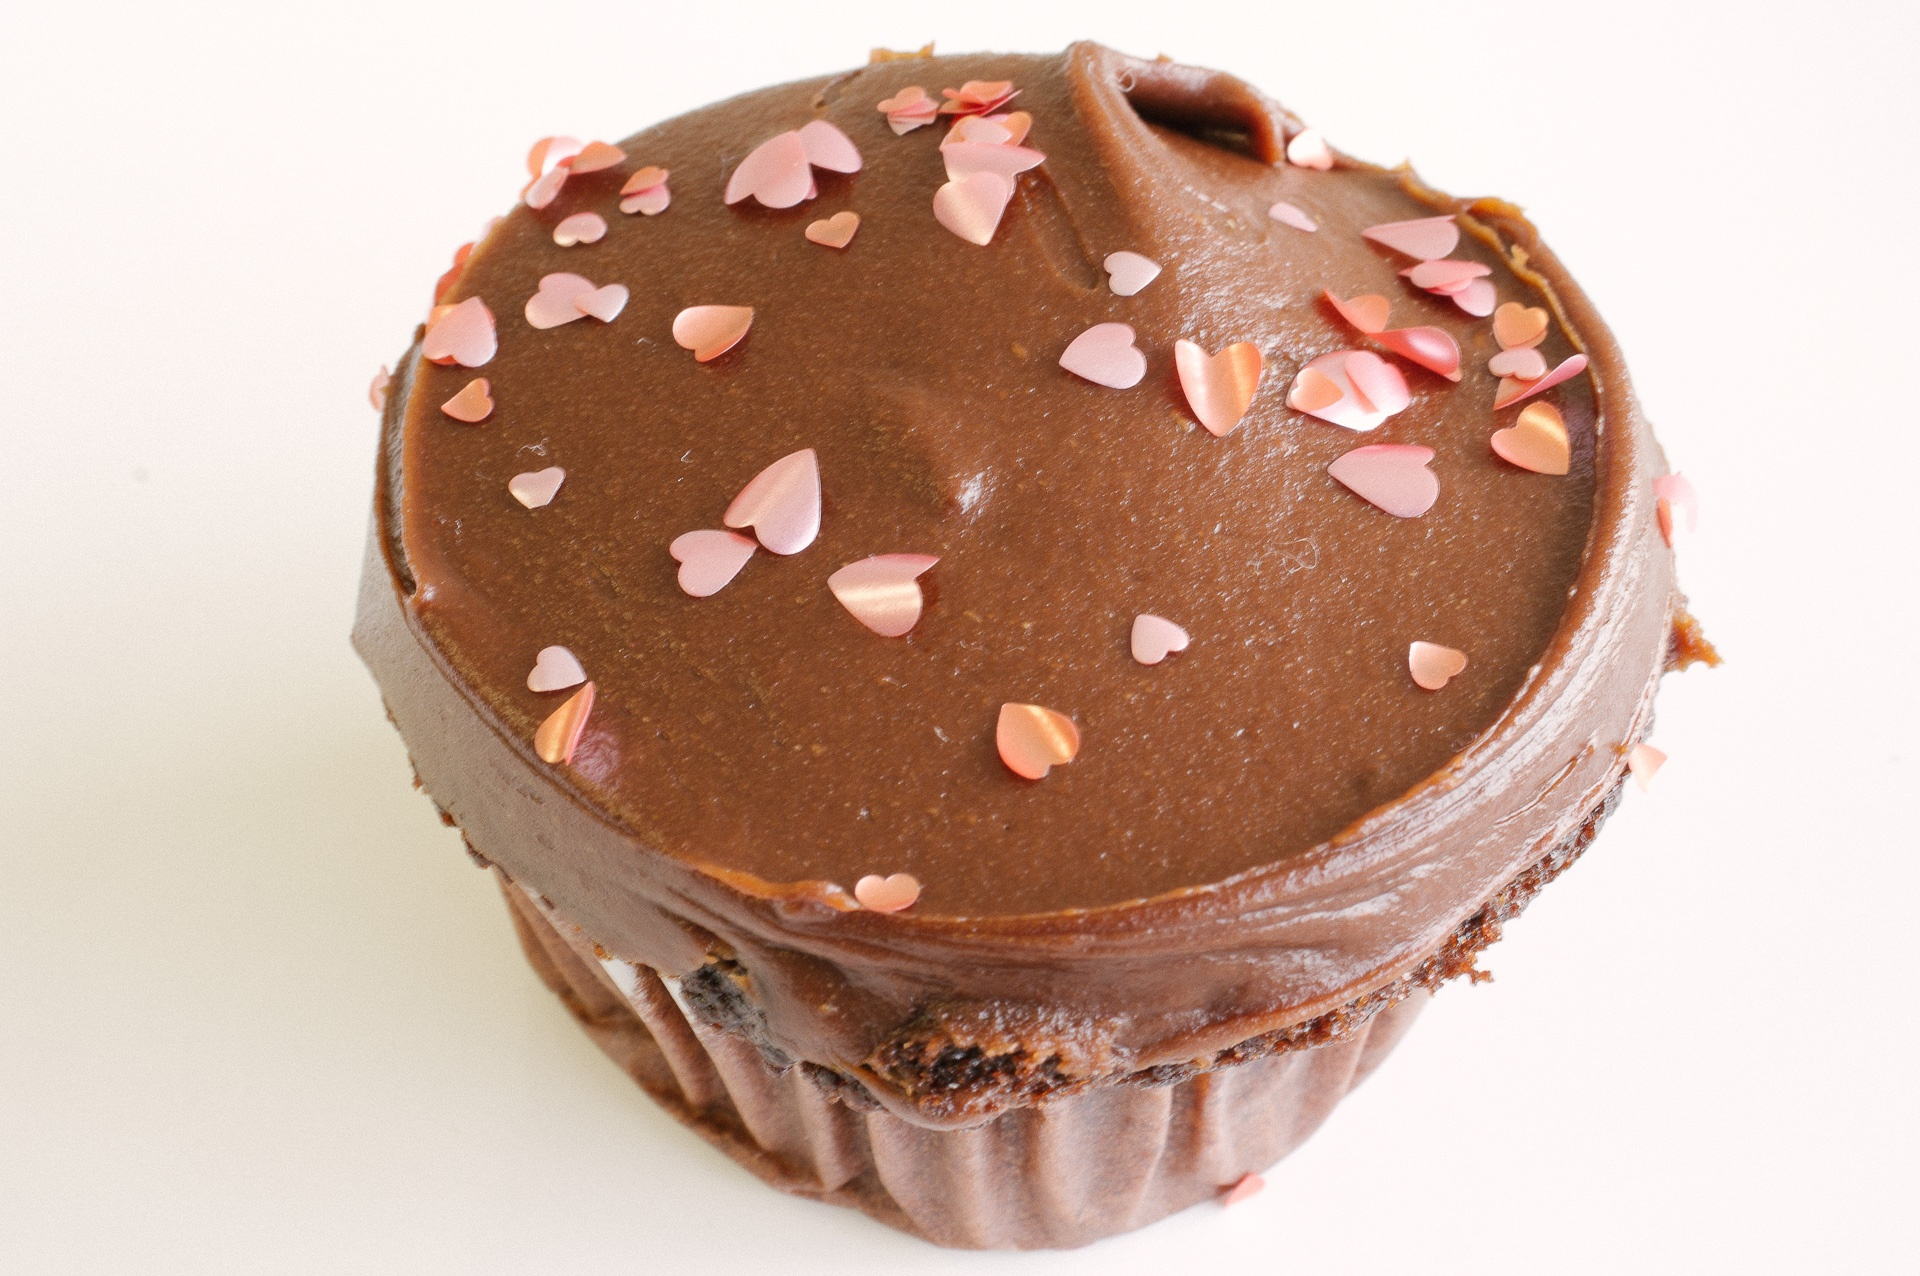 Pink hearts on a cupcake with chocolate frosting